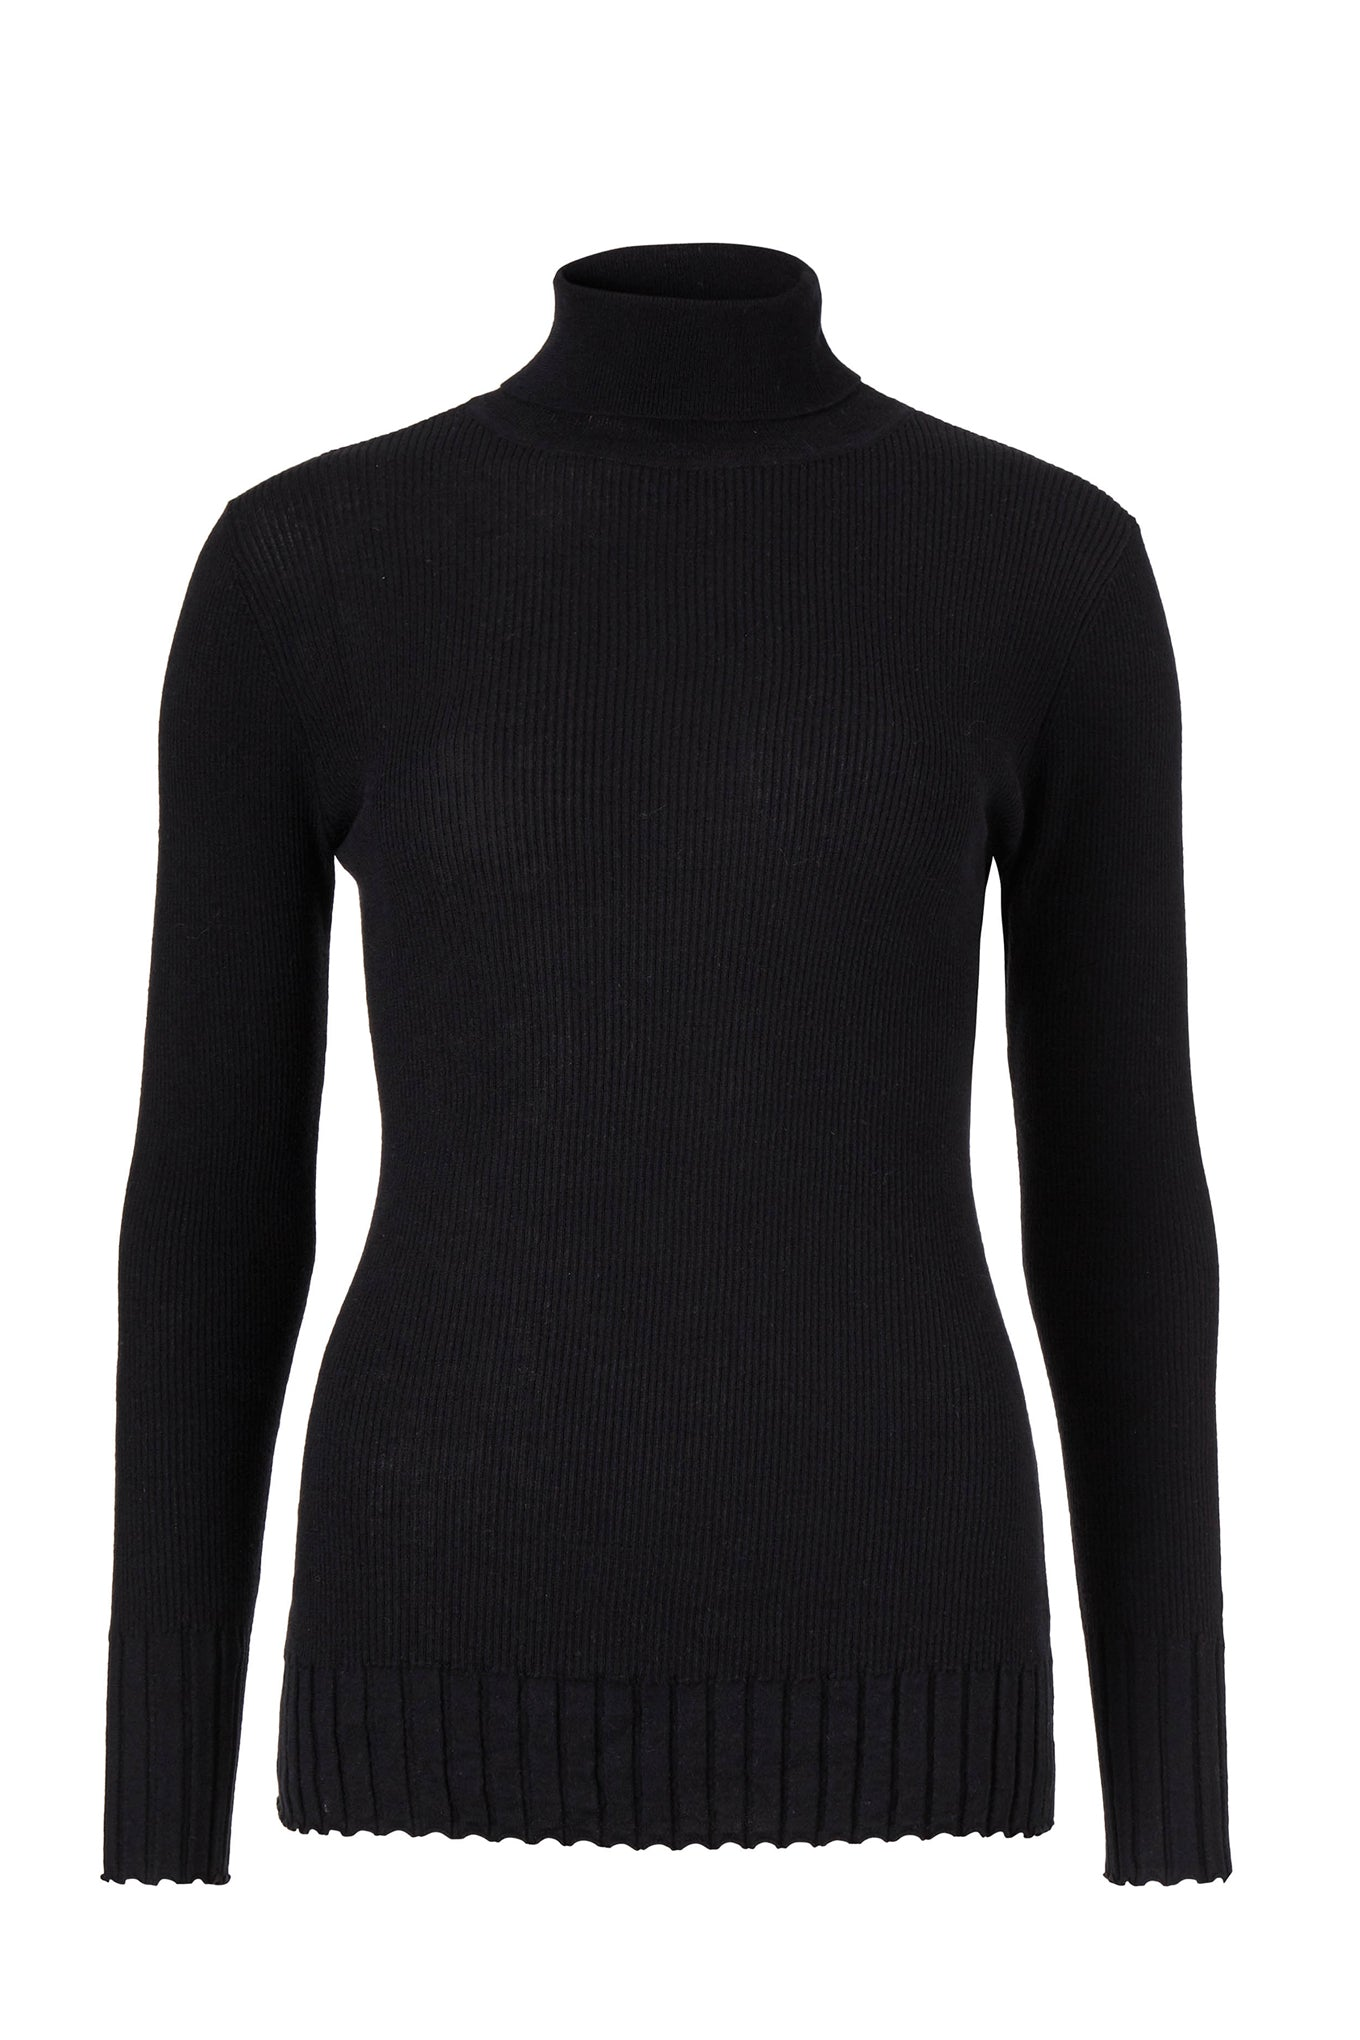 Meyer Turtleneck - Black - Silk/Wool